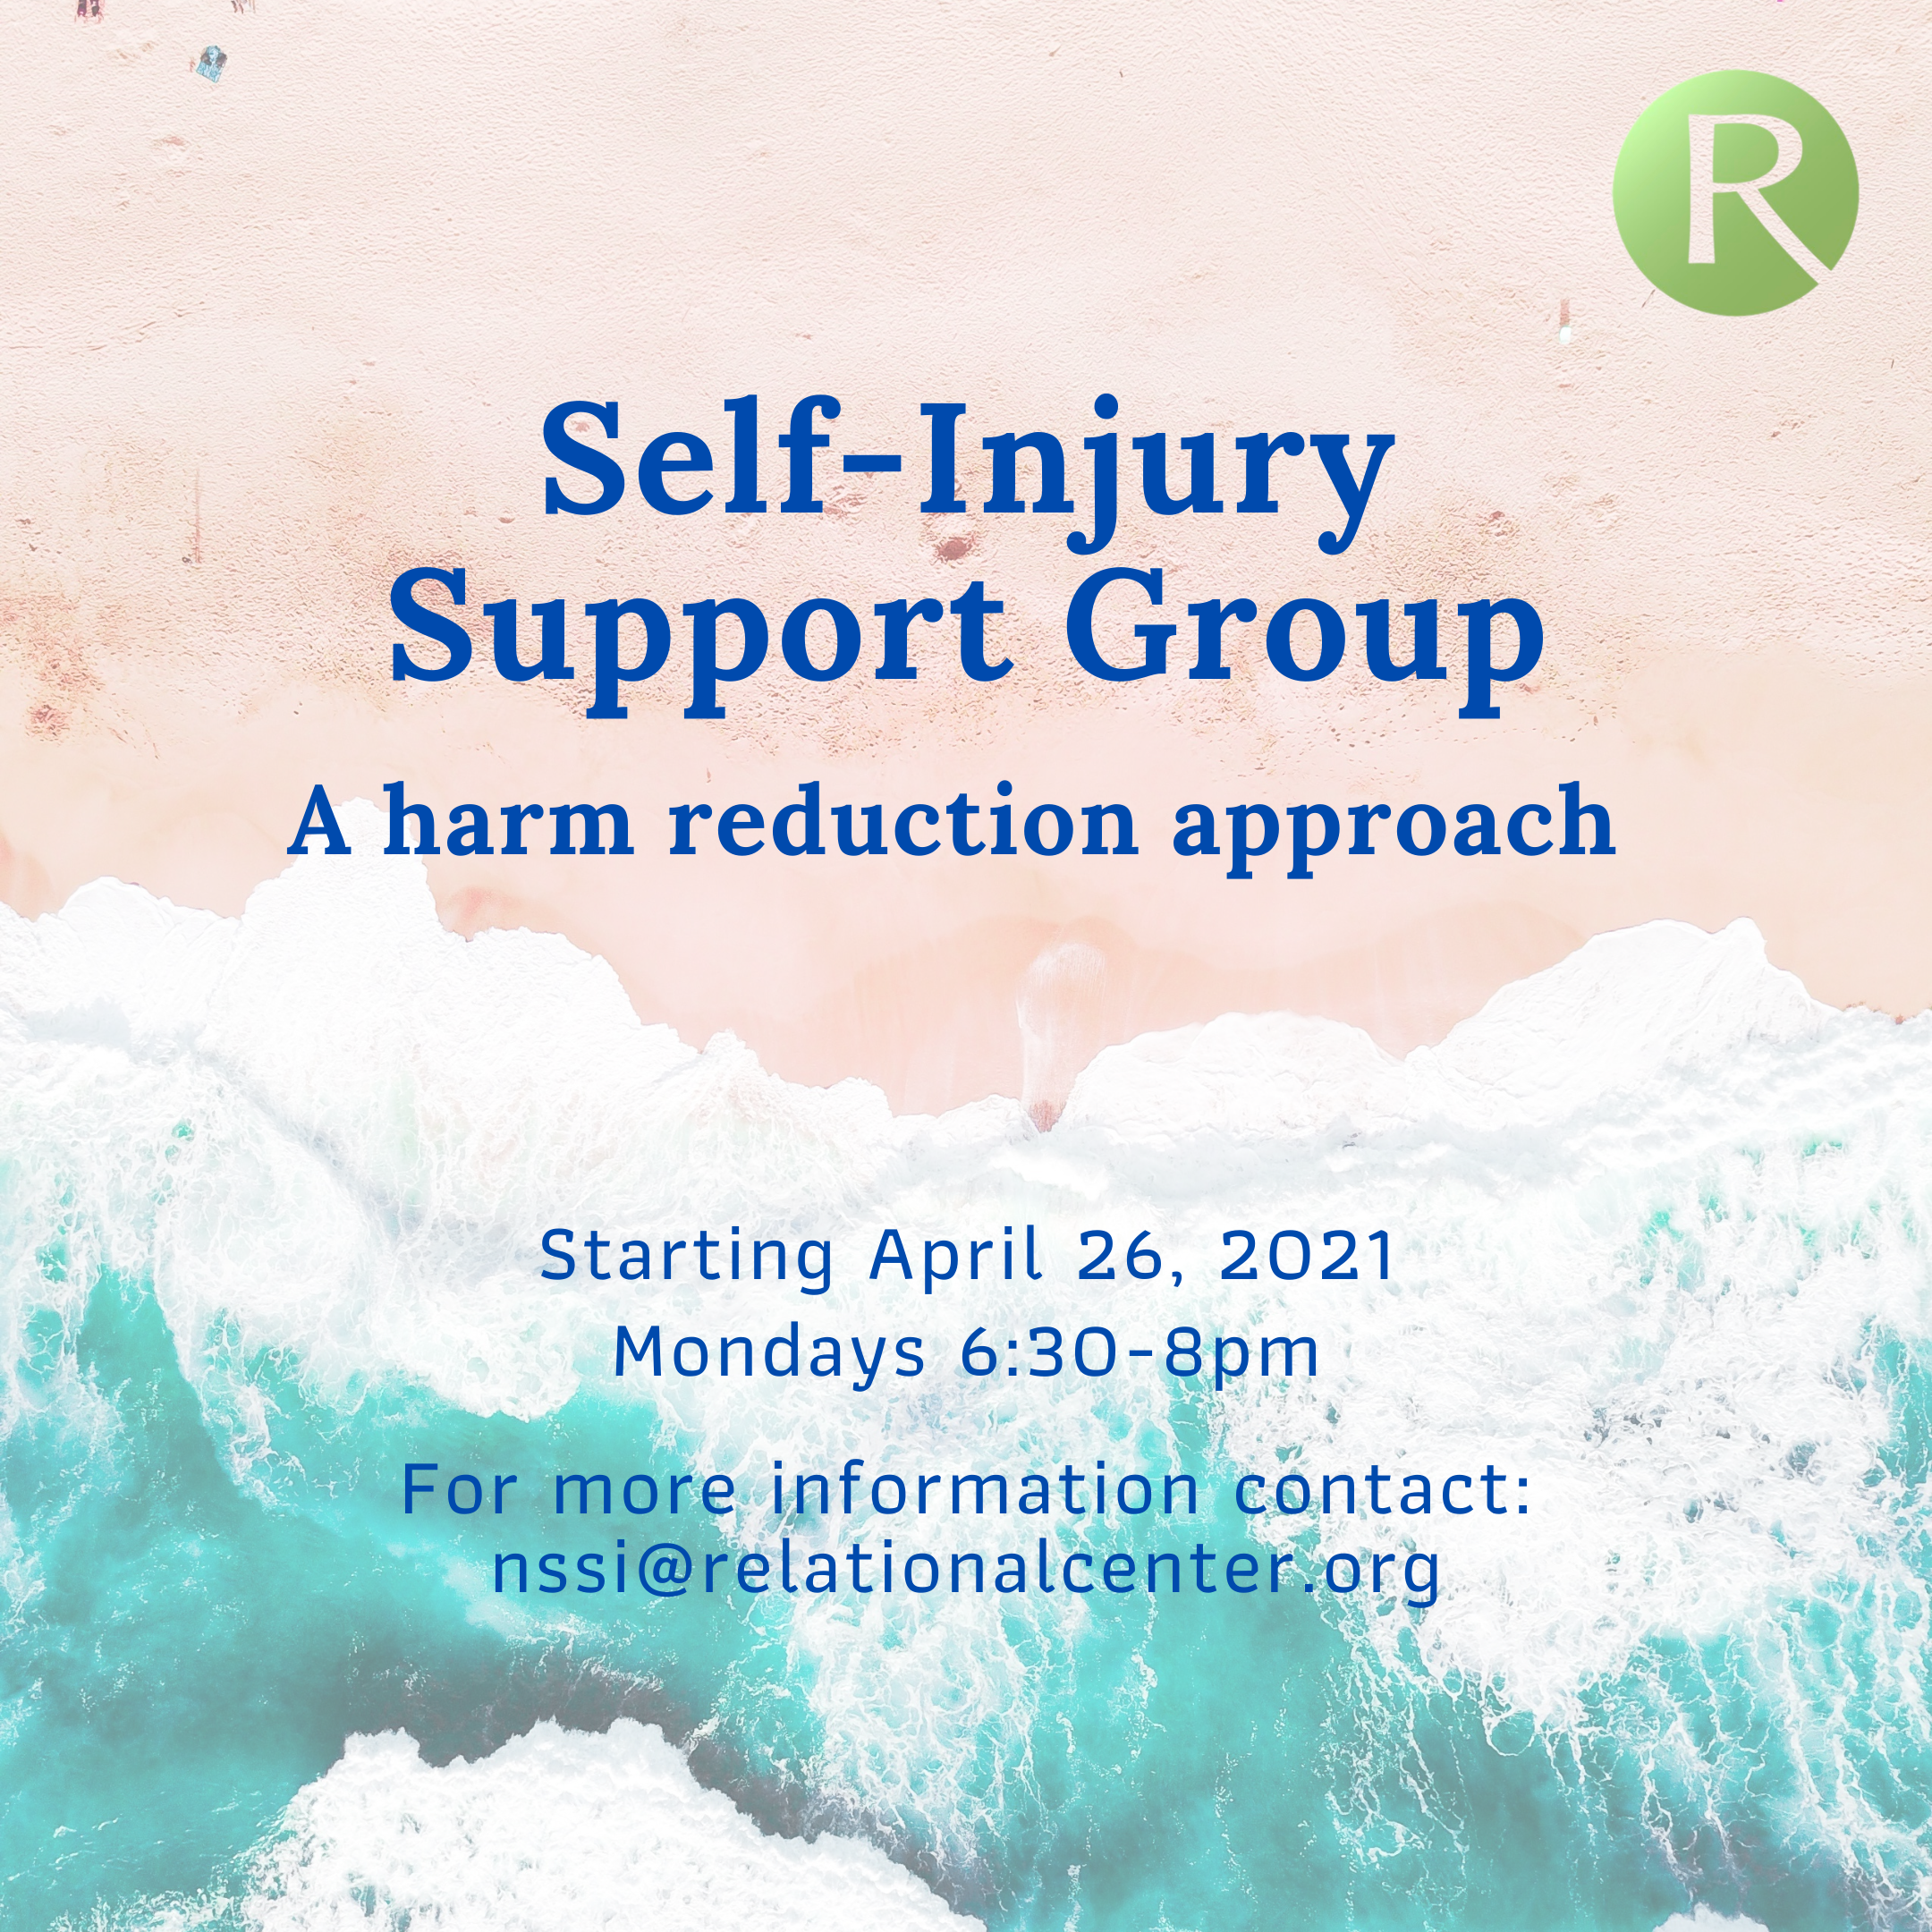 Self-Injury Support Group